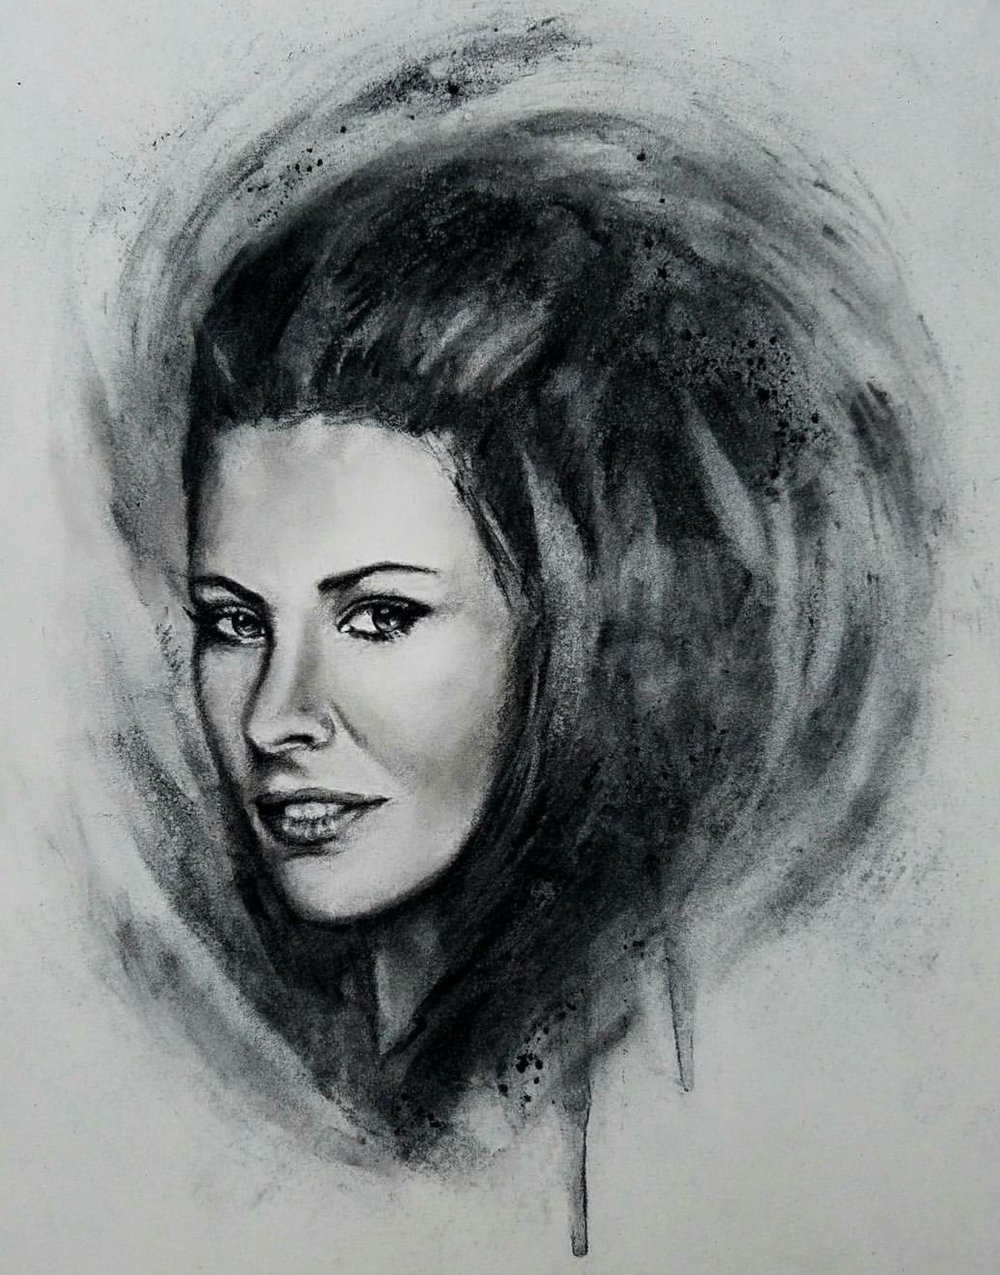 """Kate Austen"" 2016- Charcoal on Bristol. 11x14 in."